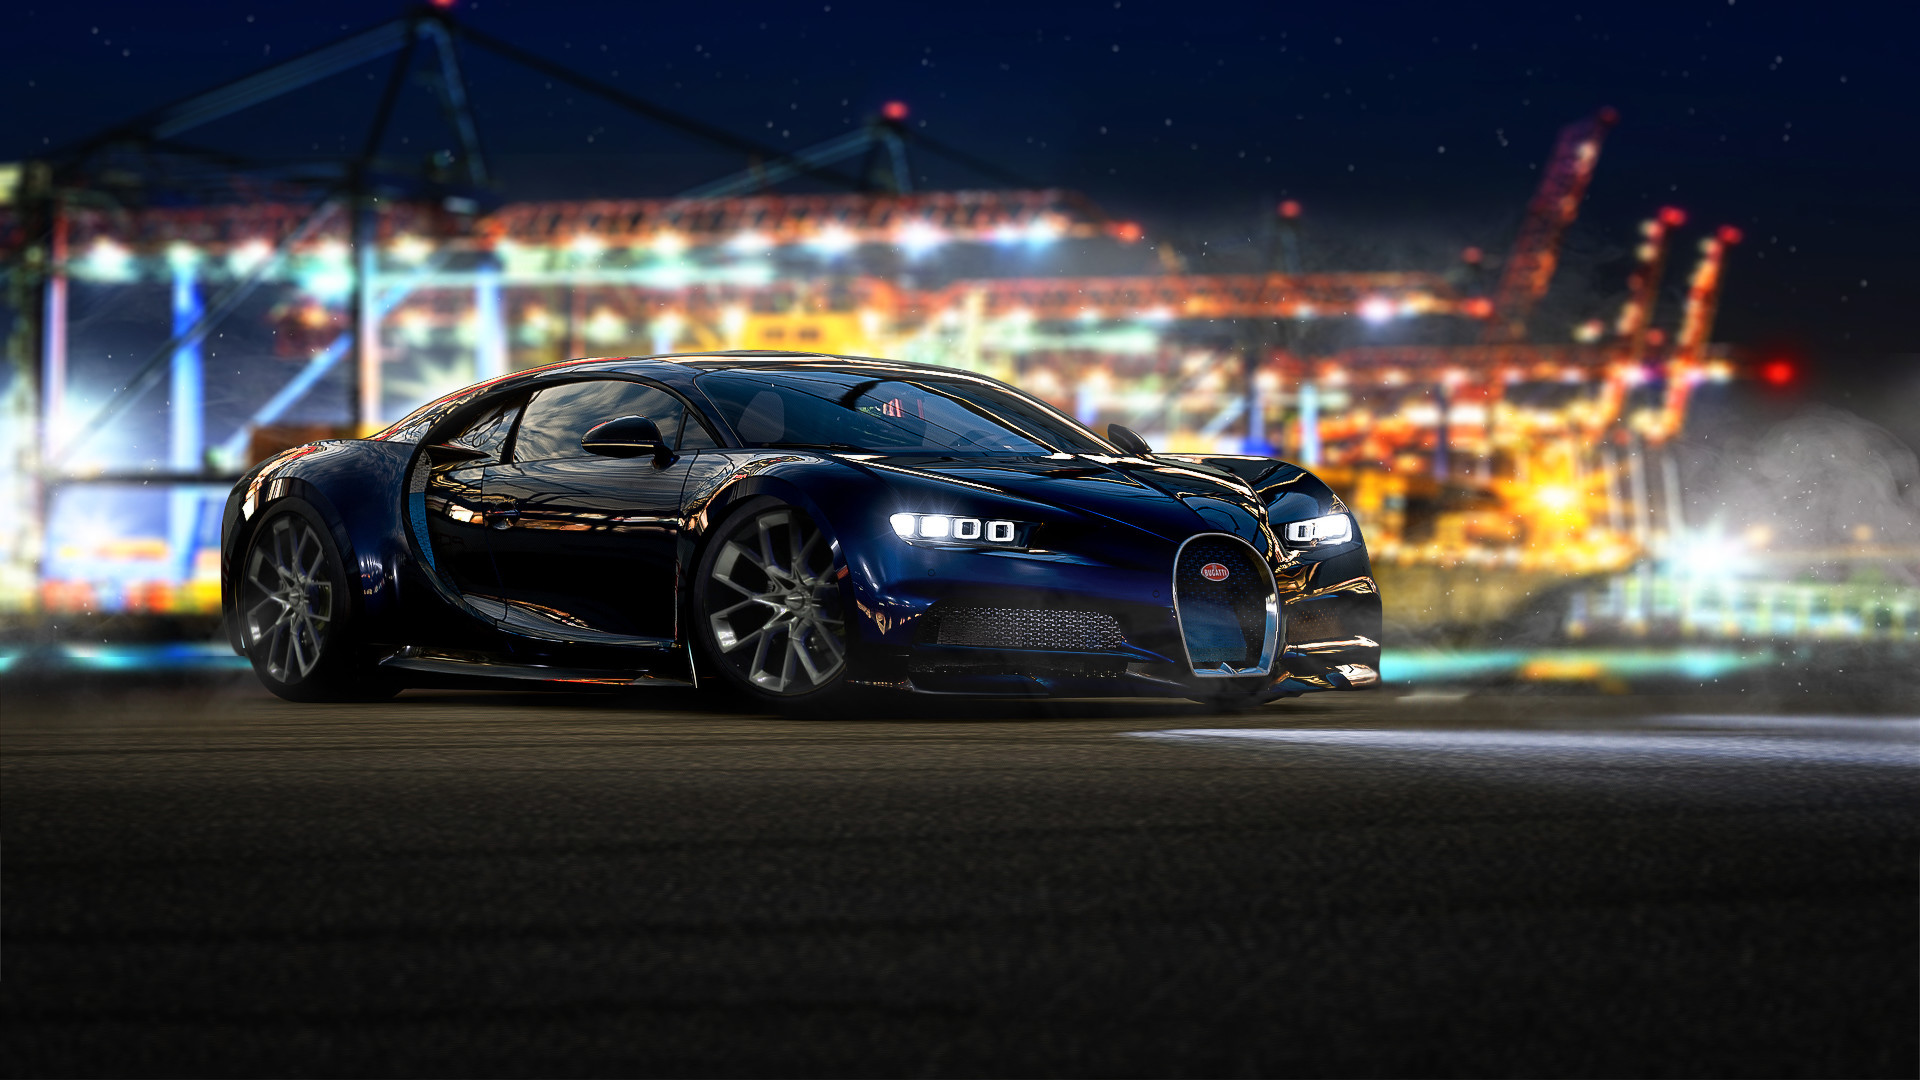 Forza Motorsport 7 Bugatti Hd Games 4k Wallpapers Images Backgrounds Photos And Pictures